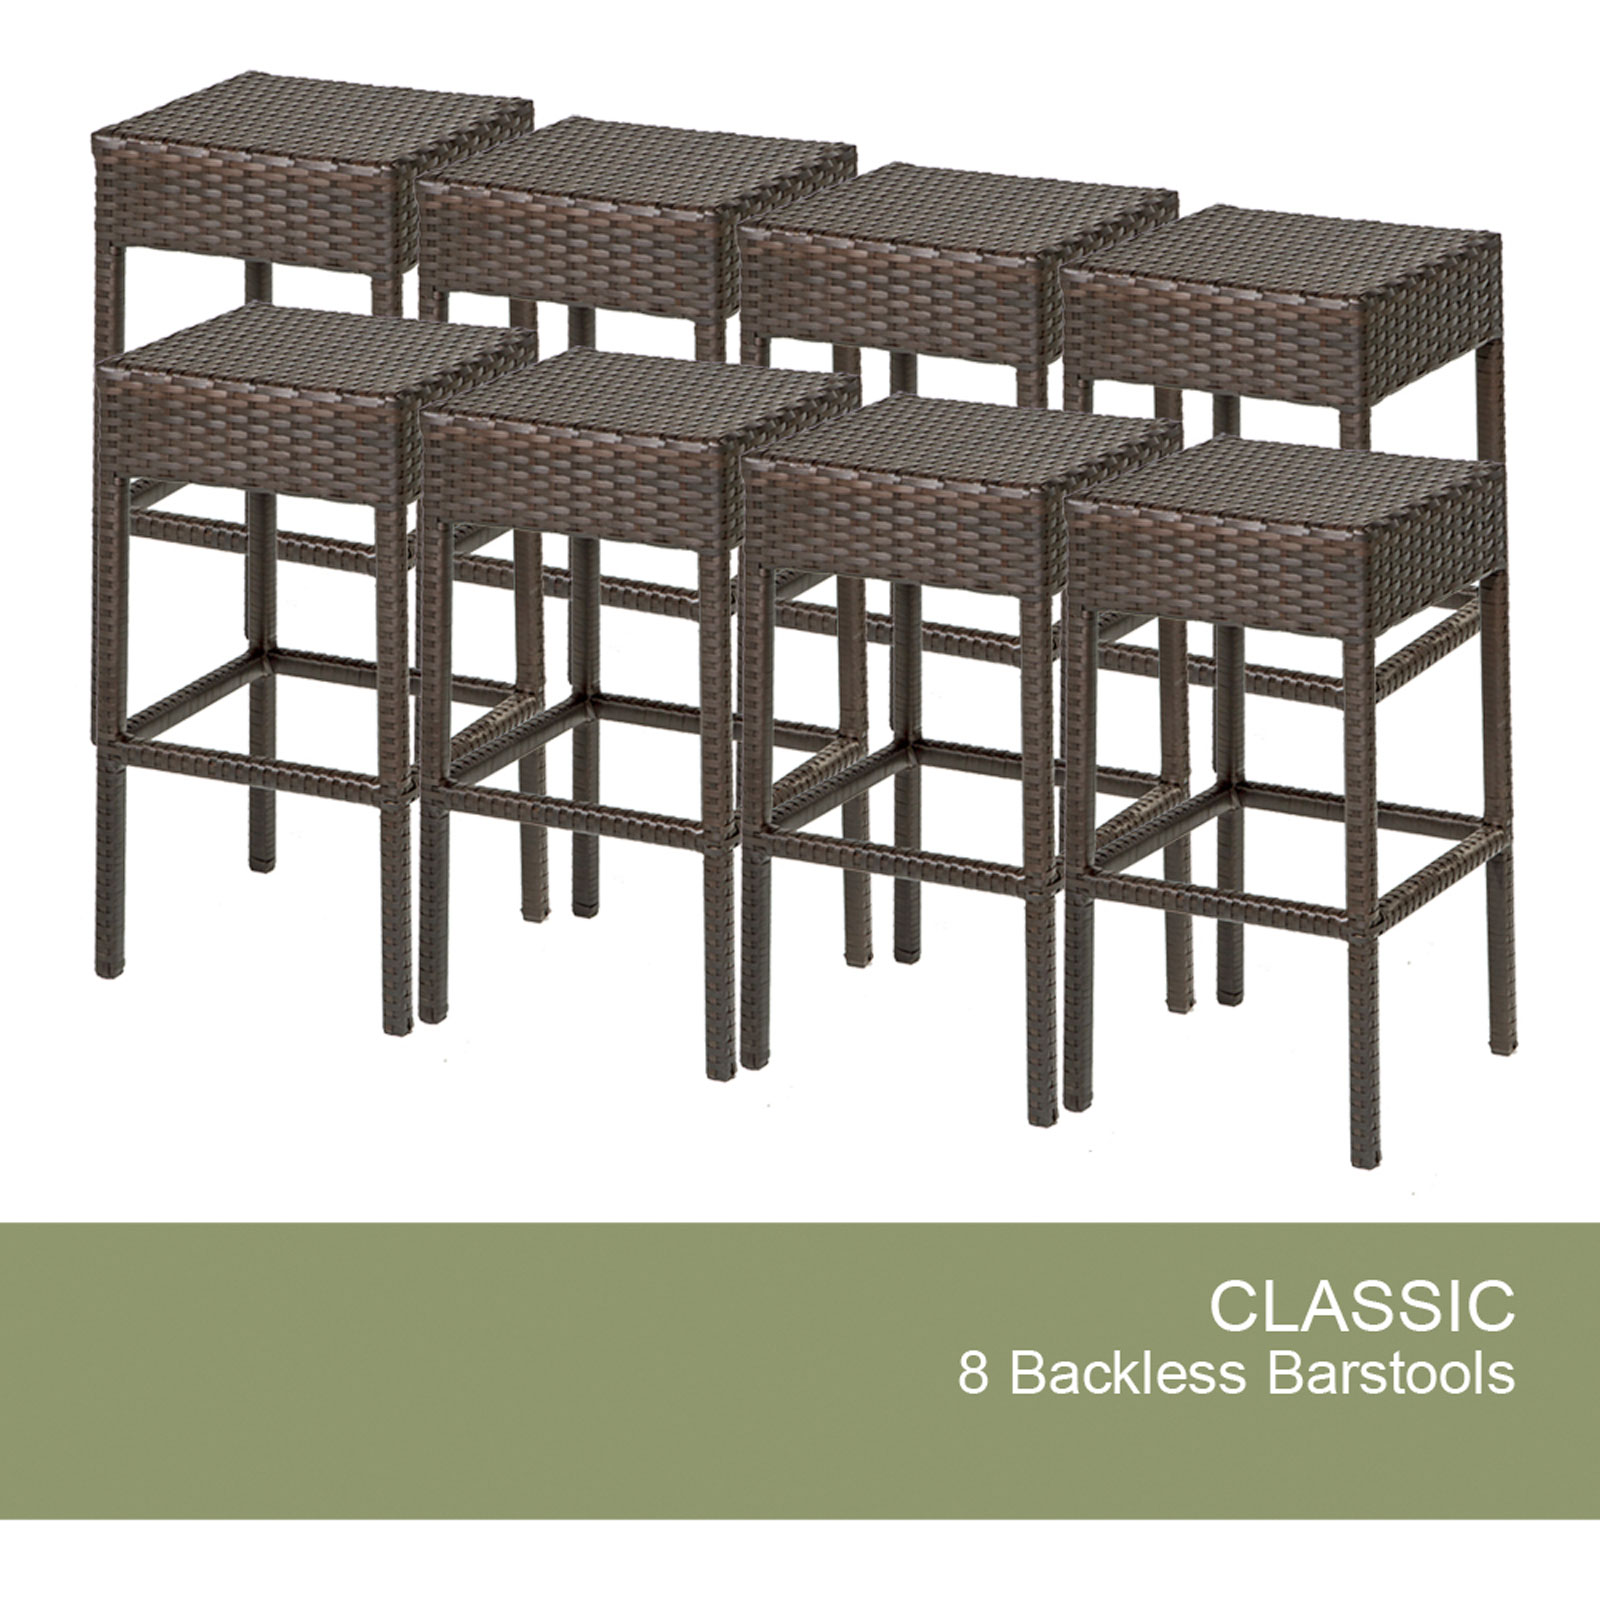 8 Classic Backless Barstools - Design Furnishings